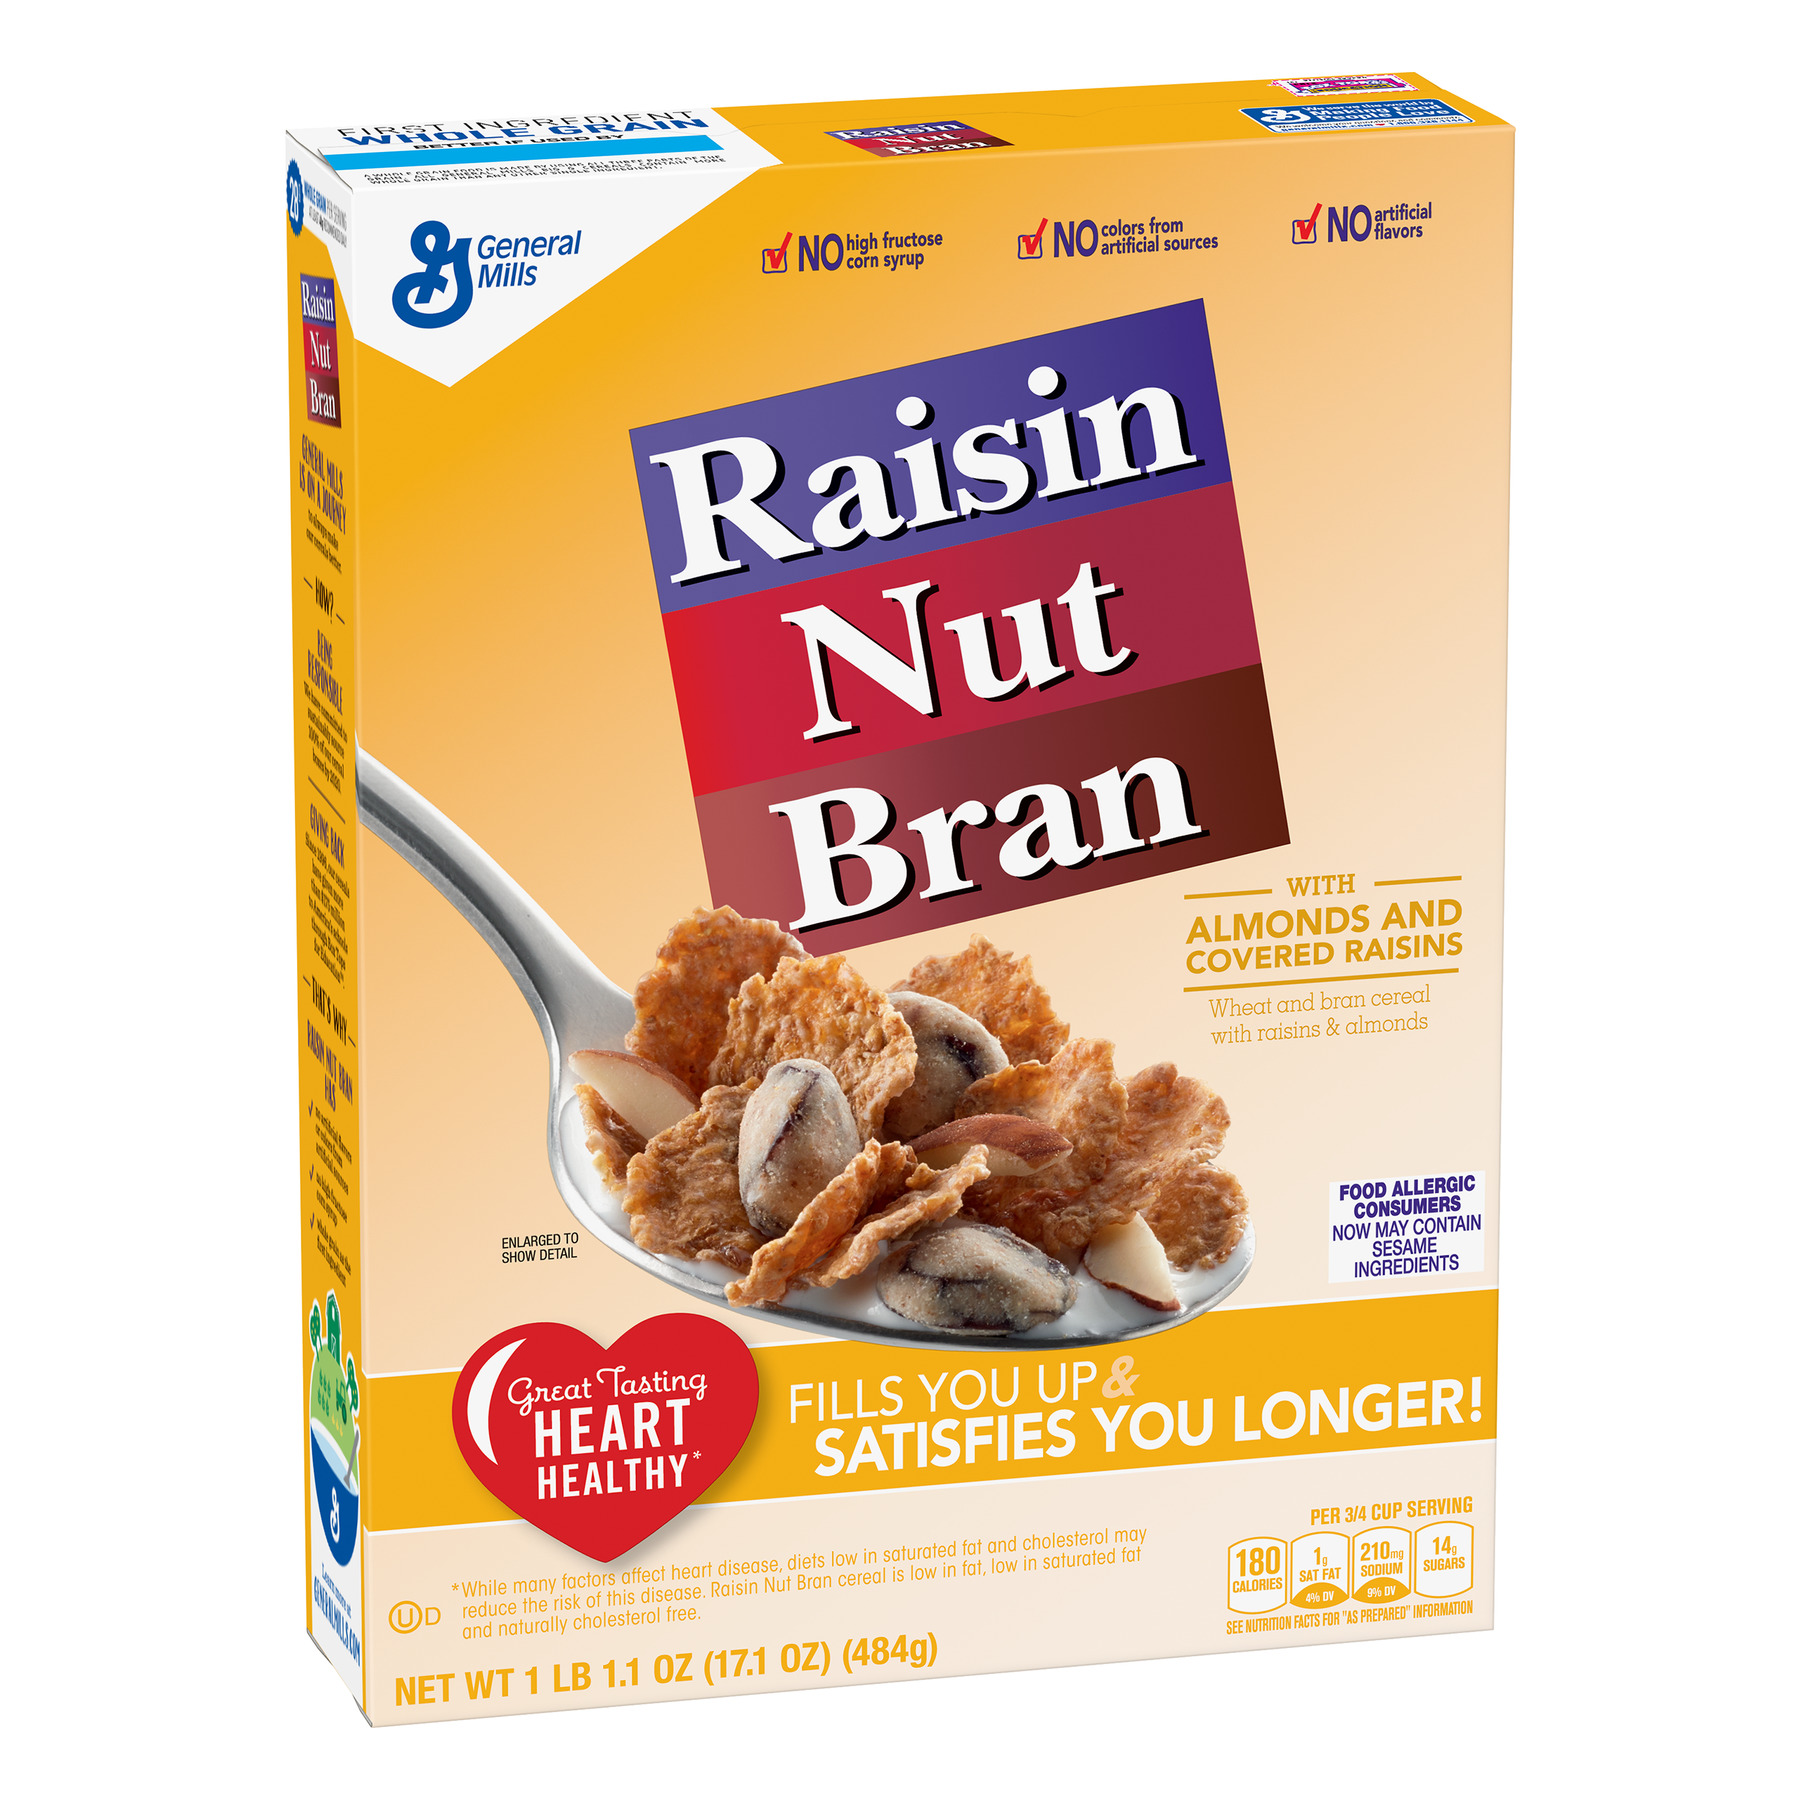 Raisin Nut Bran Breakfast Cereal, 17.1 oz Box